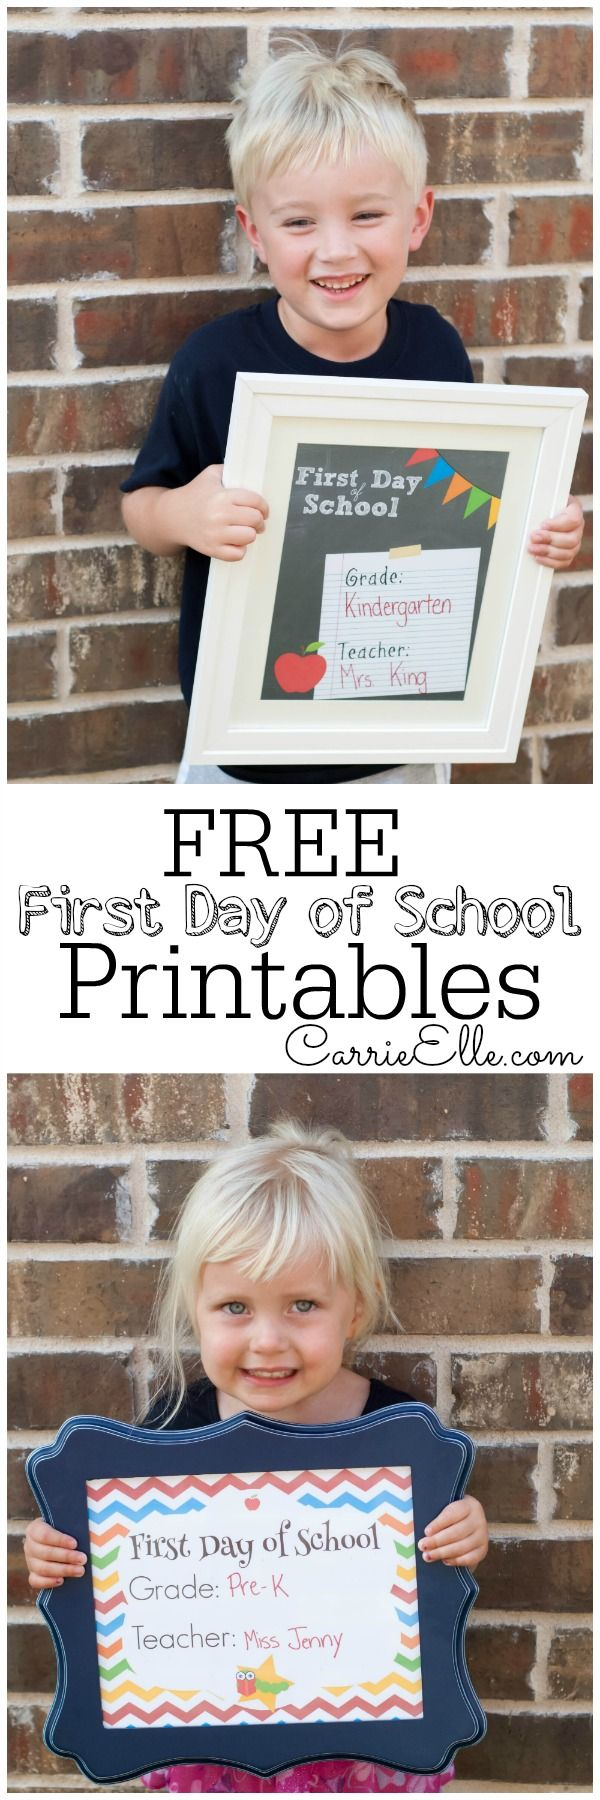 Free first day of school printables! #firstdayofschoolsign